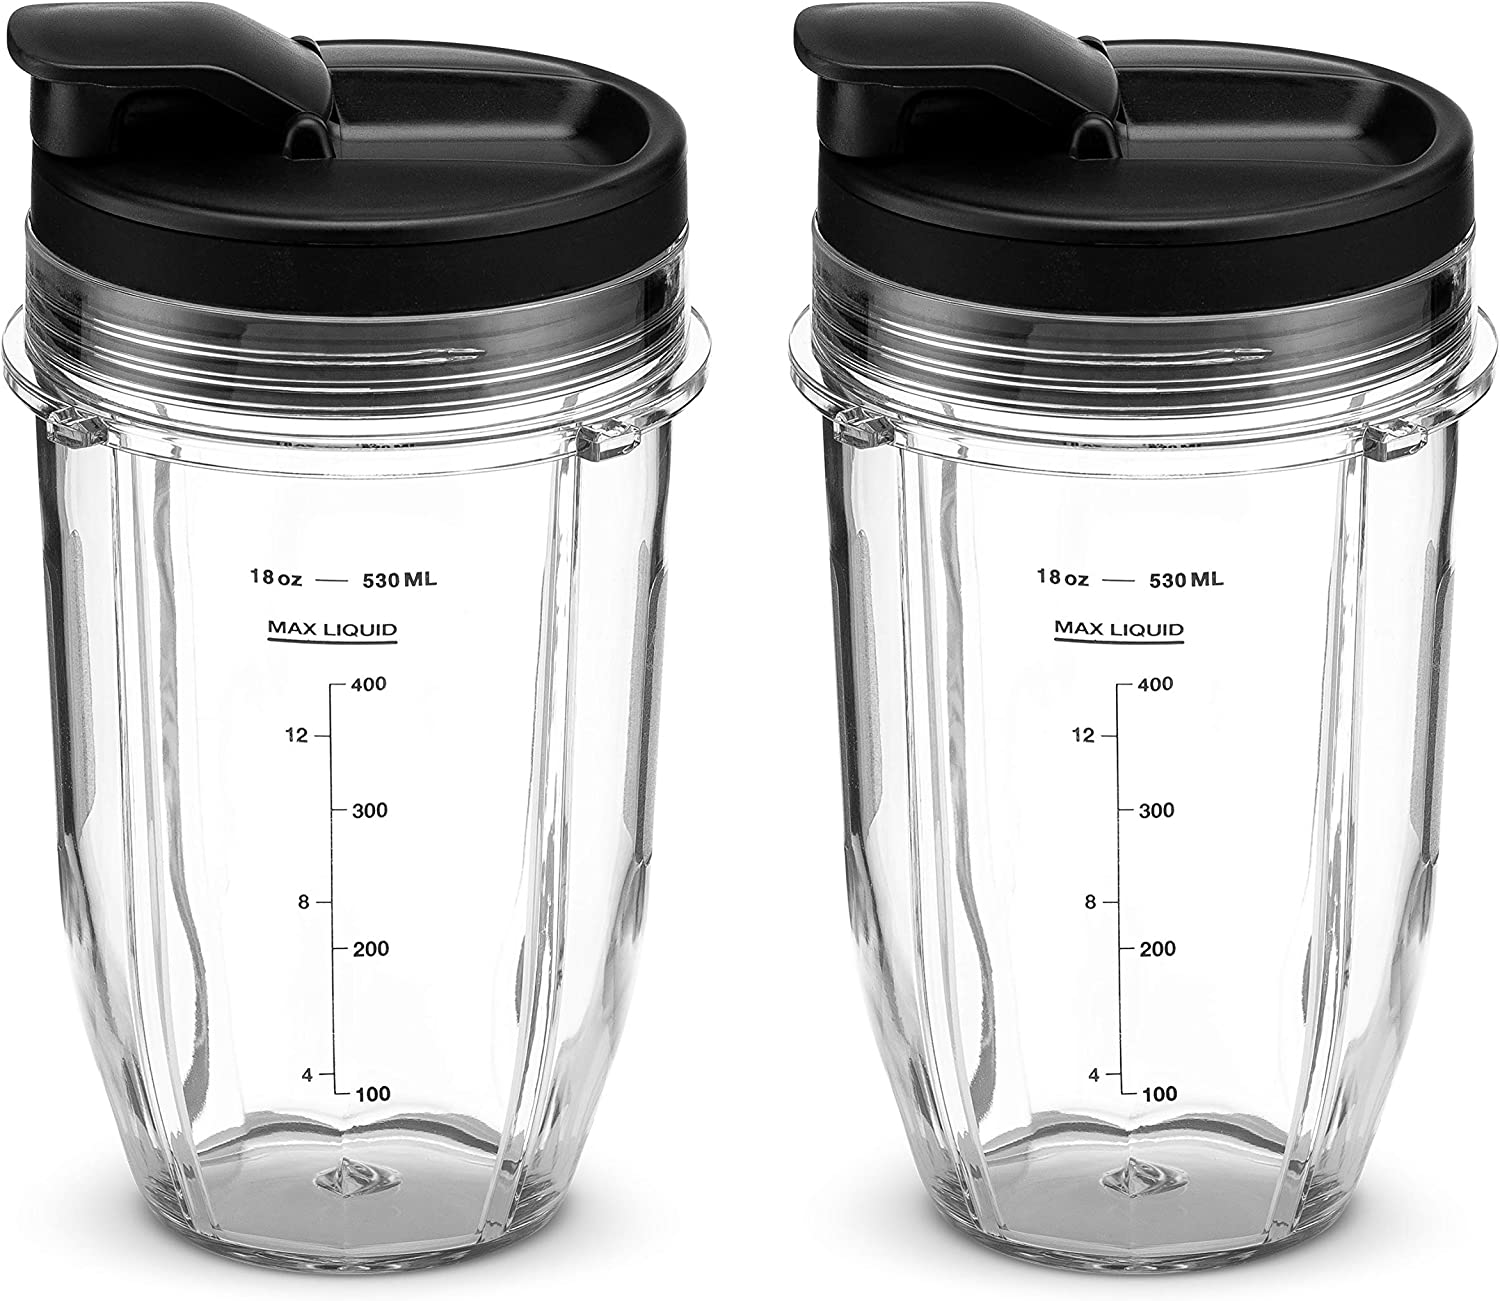 Nutri Ninja 18 oz Tritan Cups with Sip & Seal Lids. Compatible with BL480, BL490, BL640, BL680 Auto IQ Series Blenders (Pack of 2)